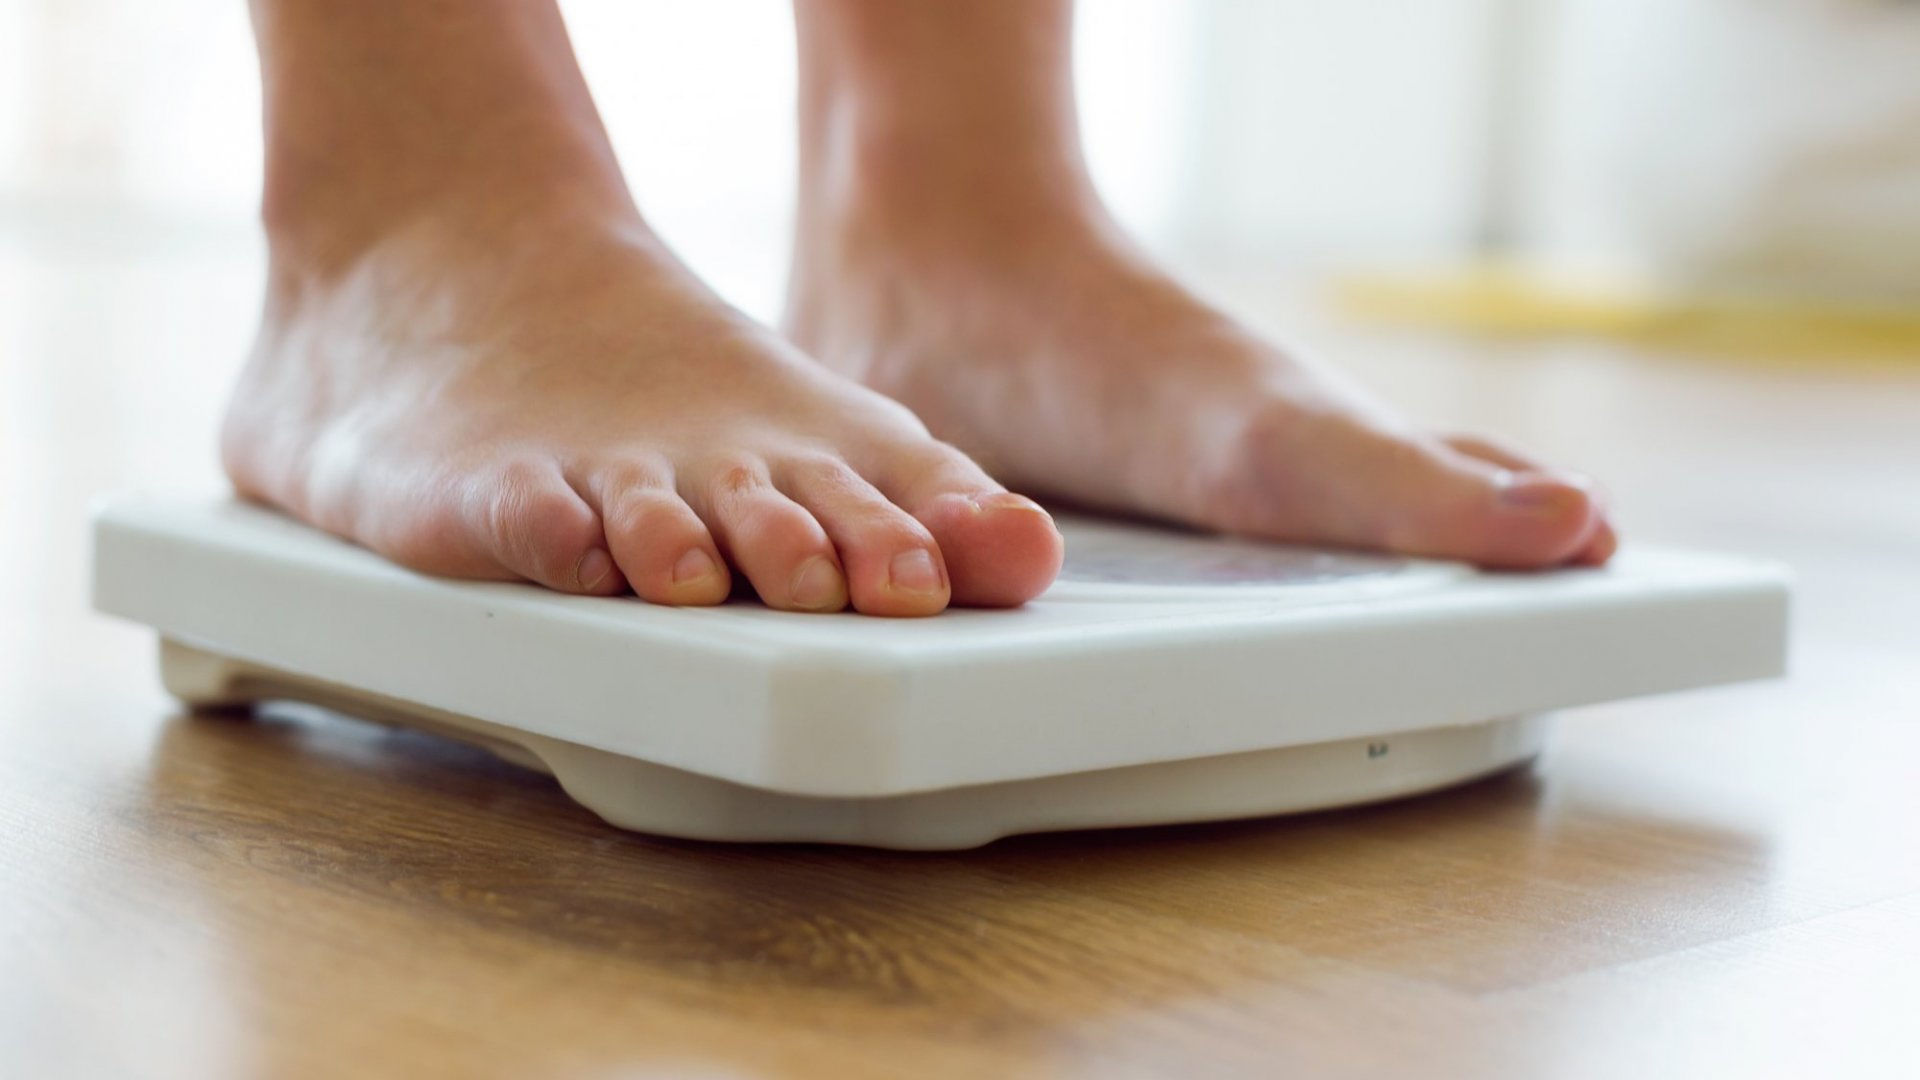 A New Study Ranked All 50 States By How Fat Their People Are, and the Results are Eye-Opening